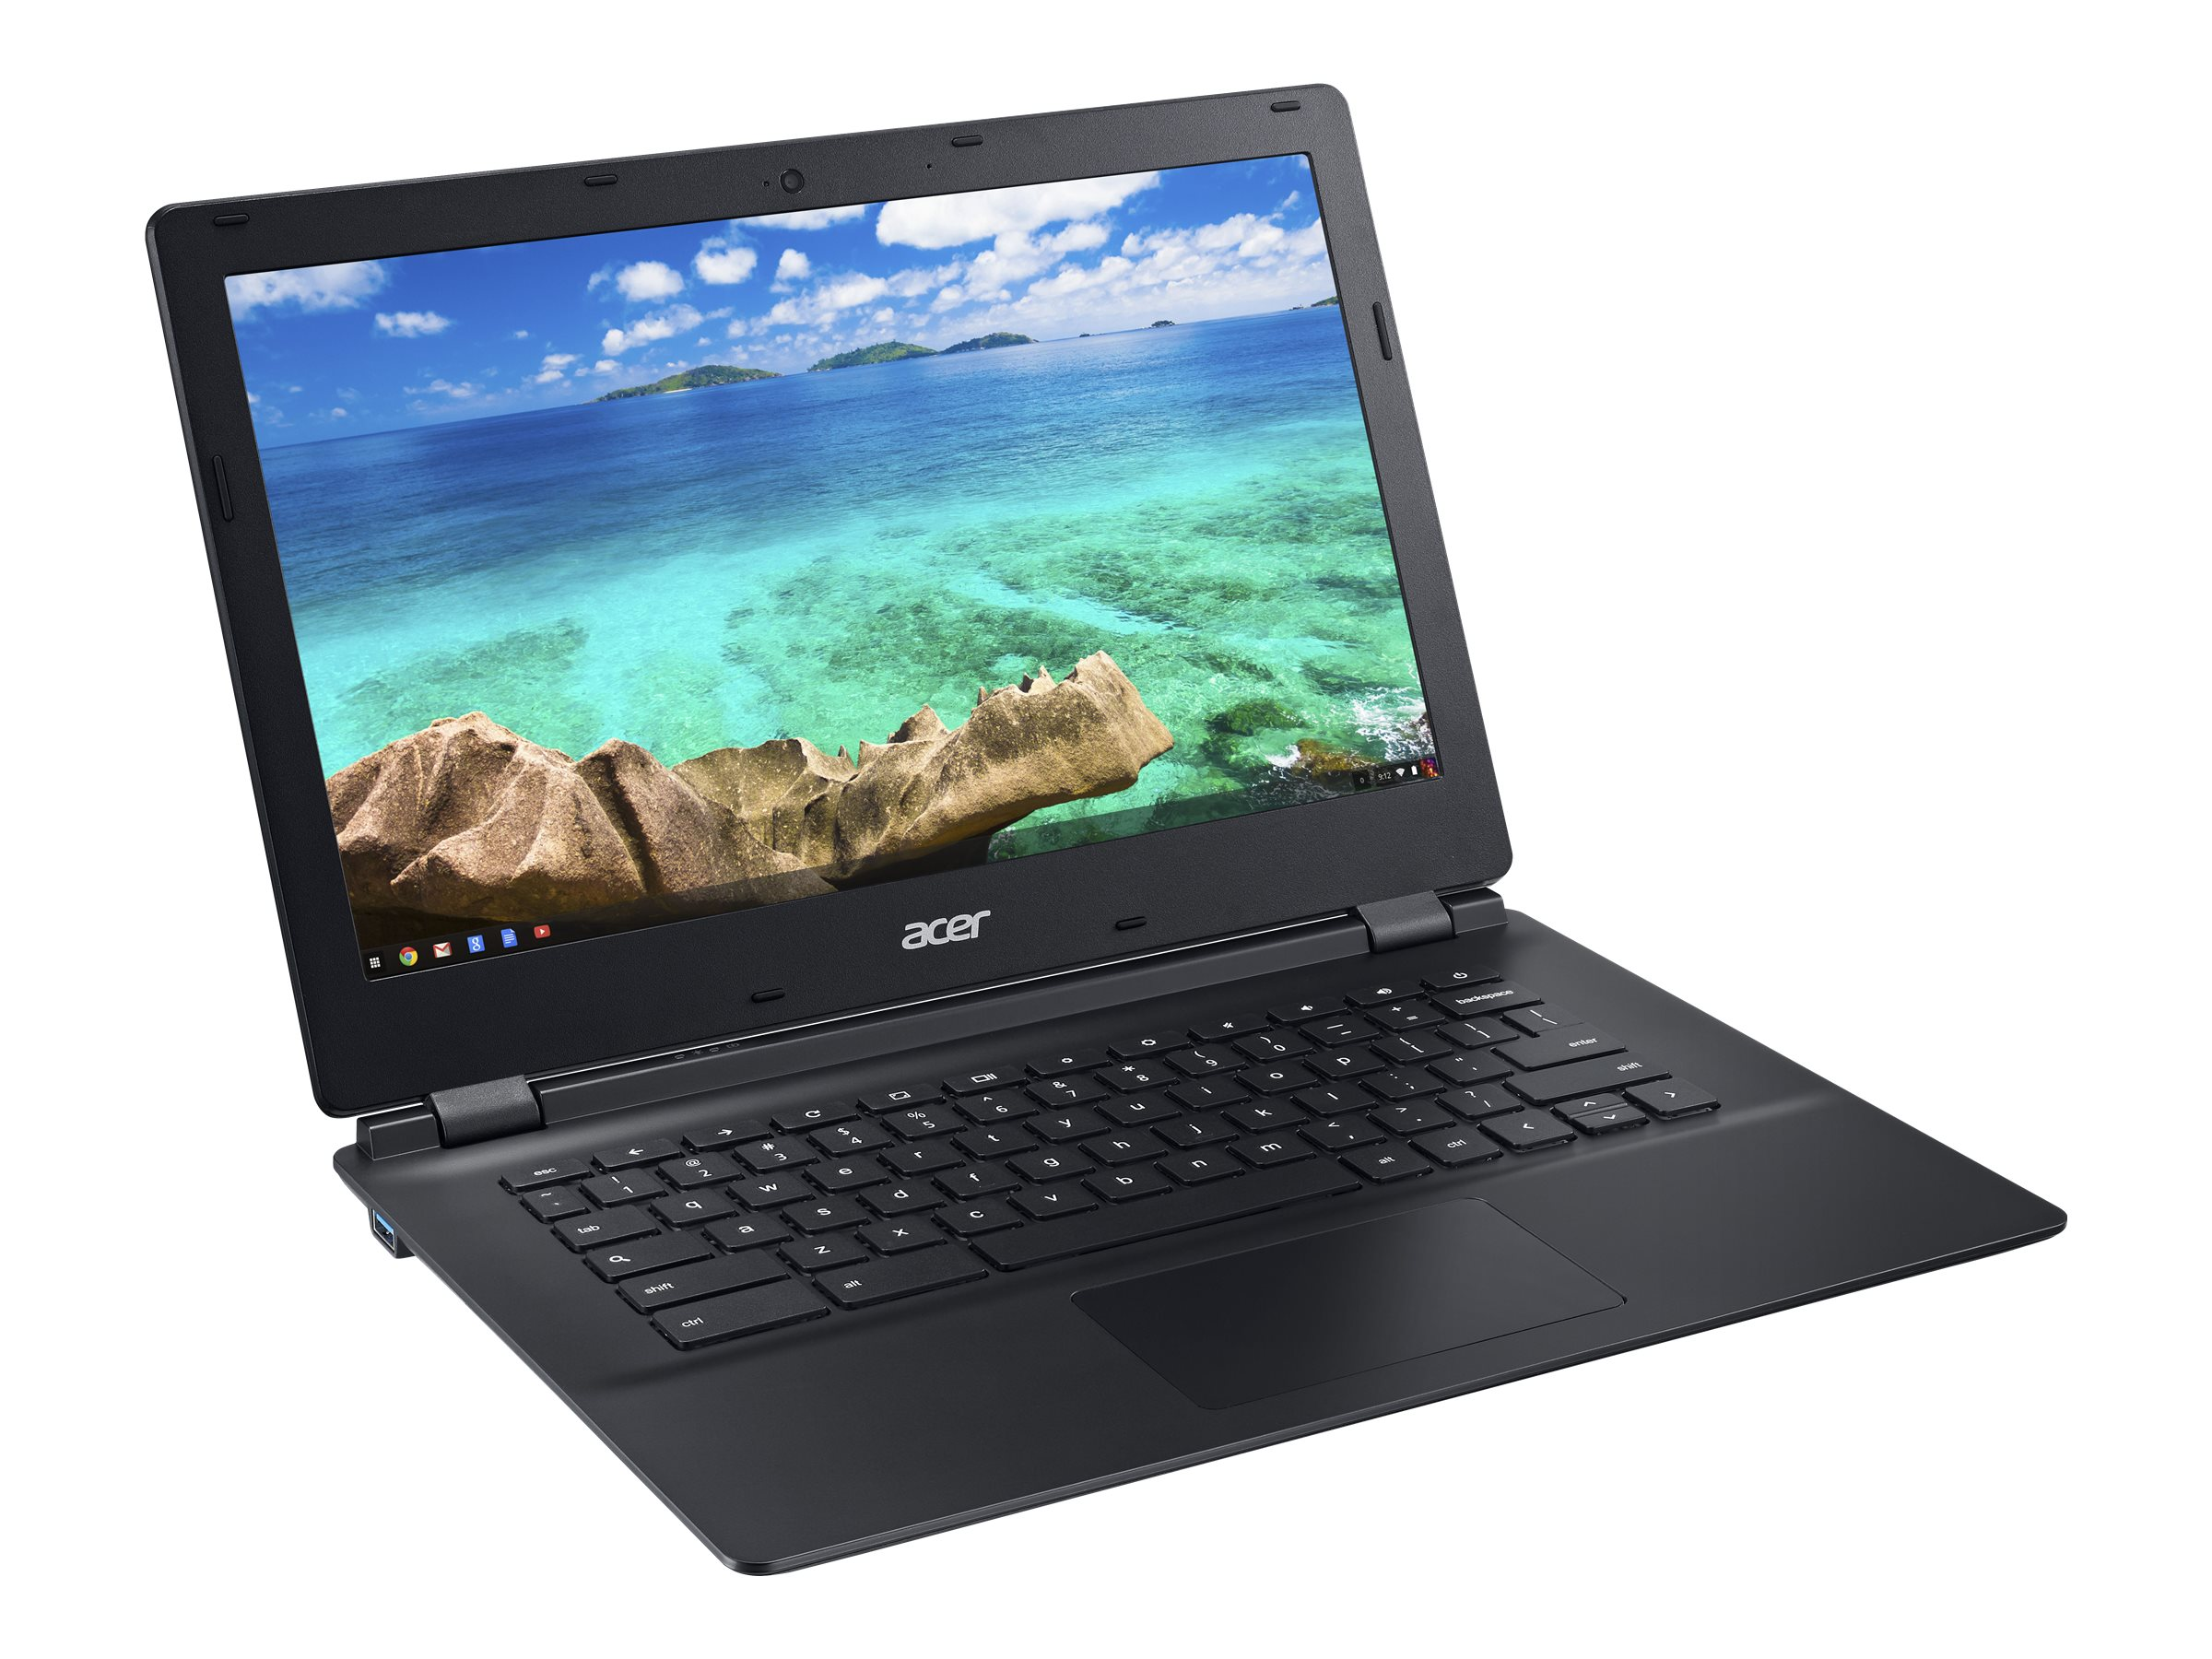 Acer NX.G14AA.003 Image 3